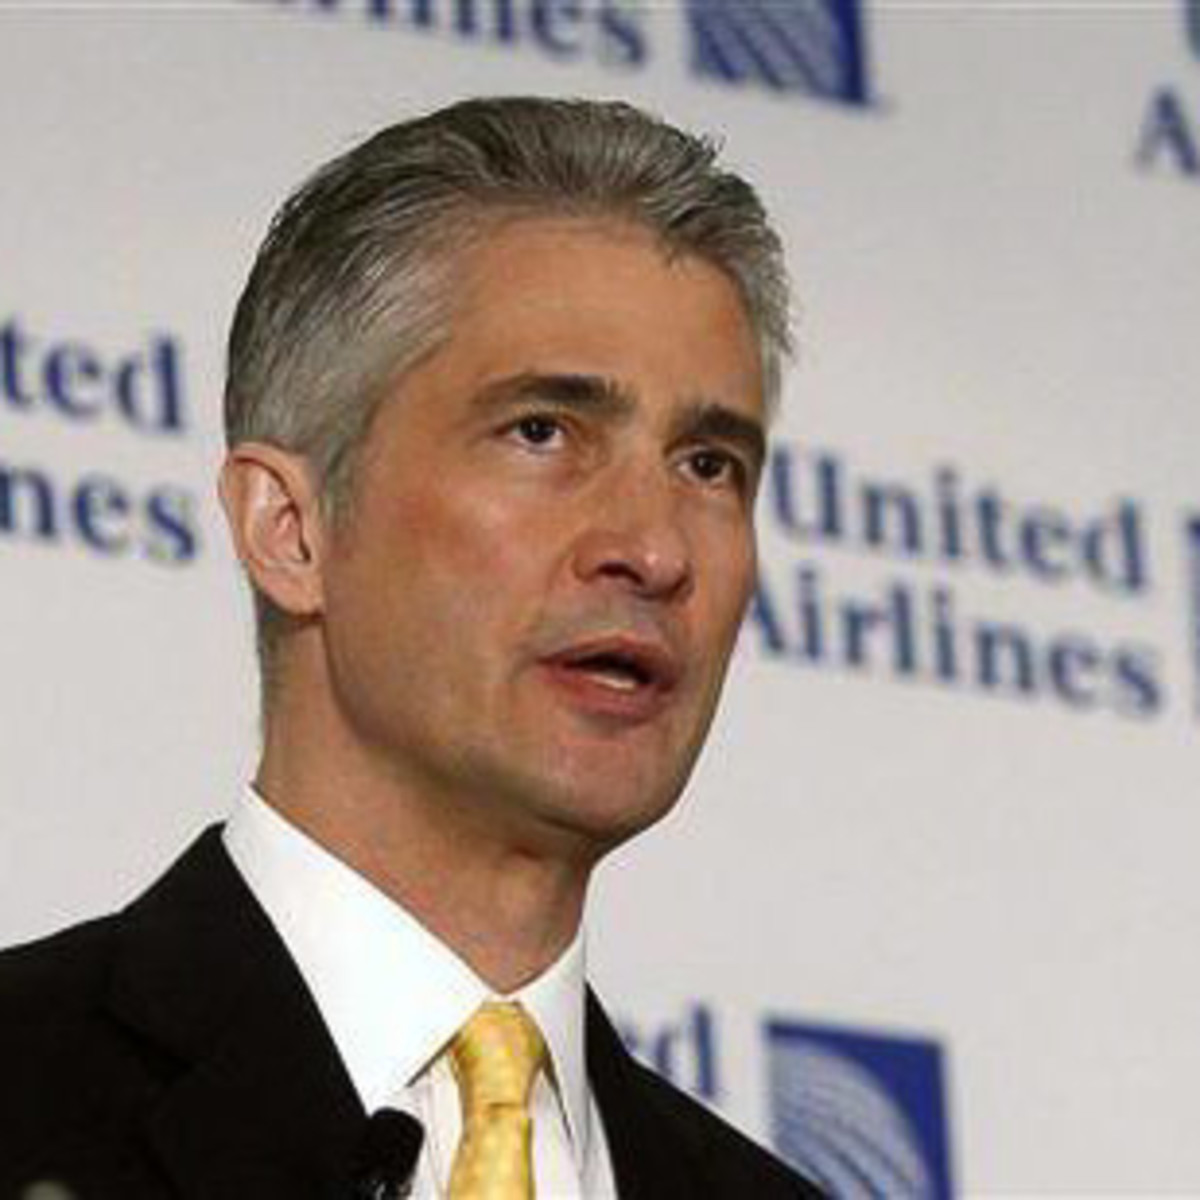 News_Jeff Smisek_CEO_United